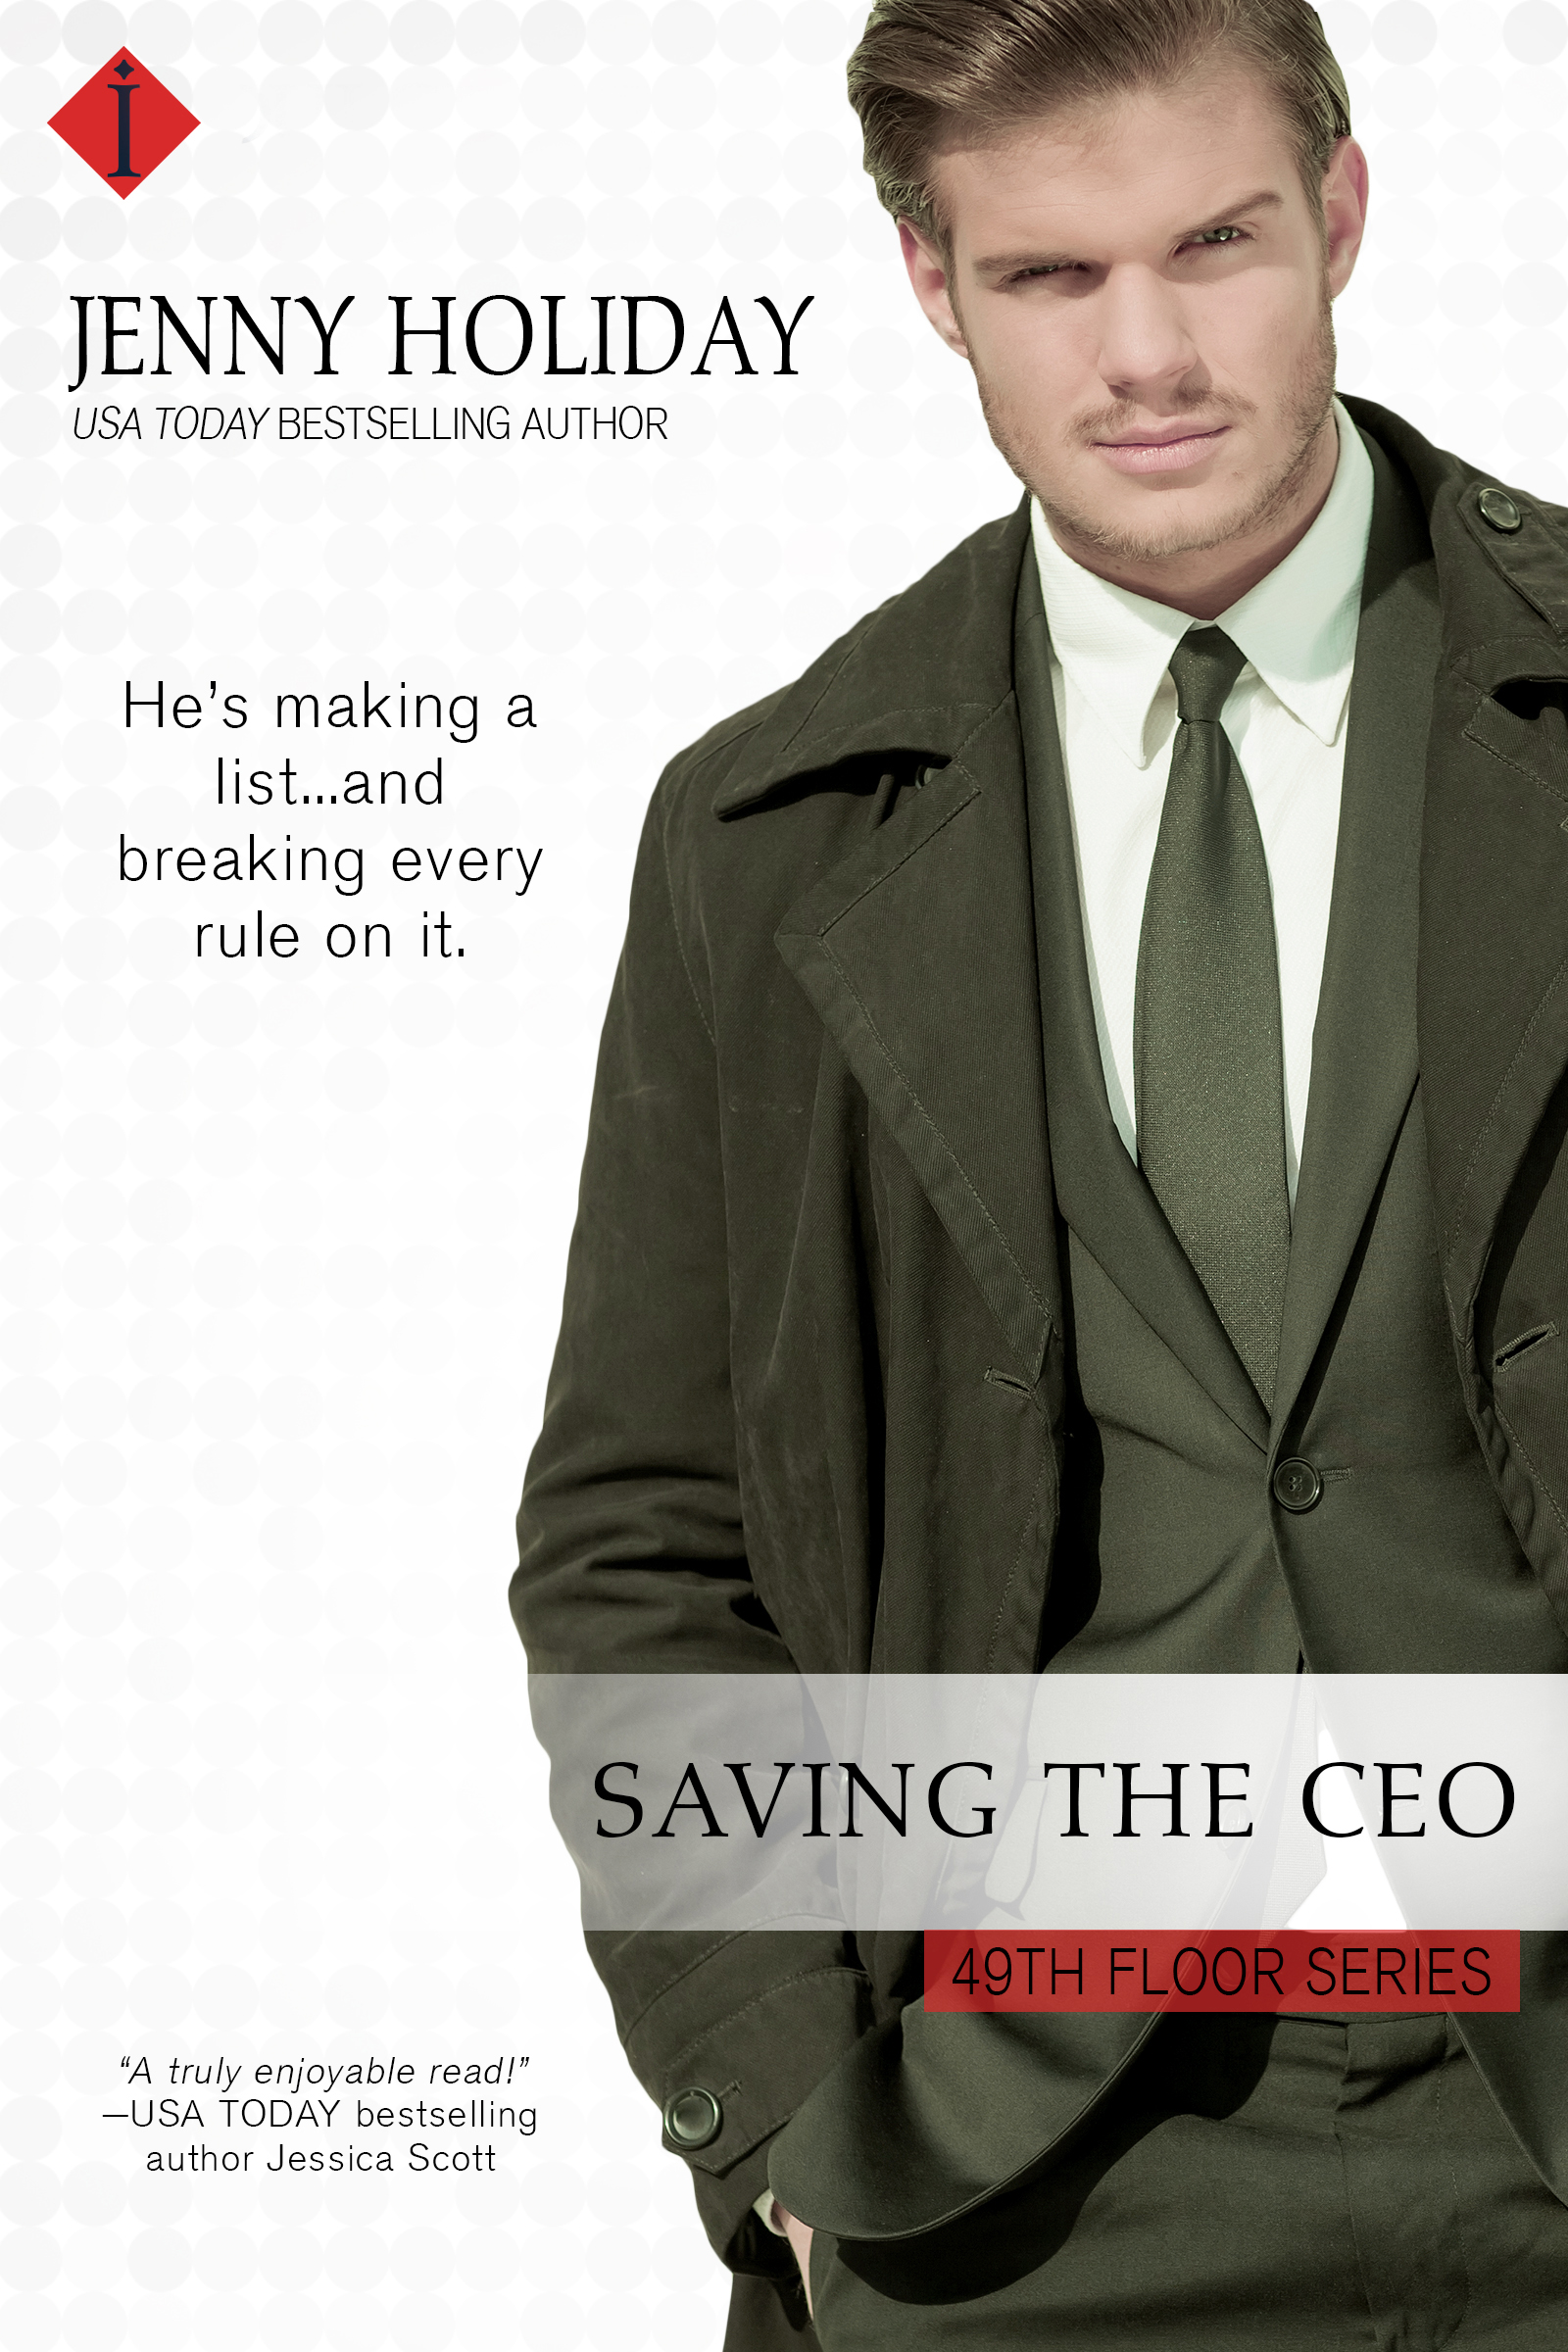 Saving the CEO